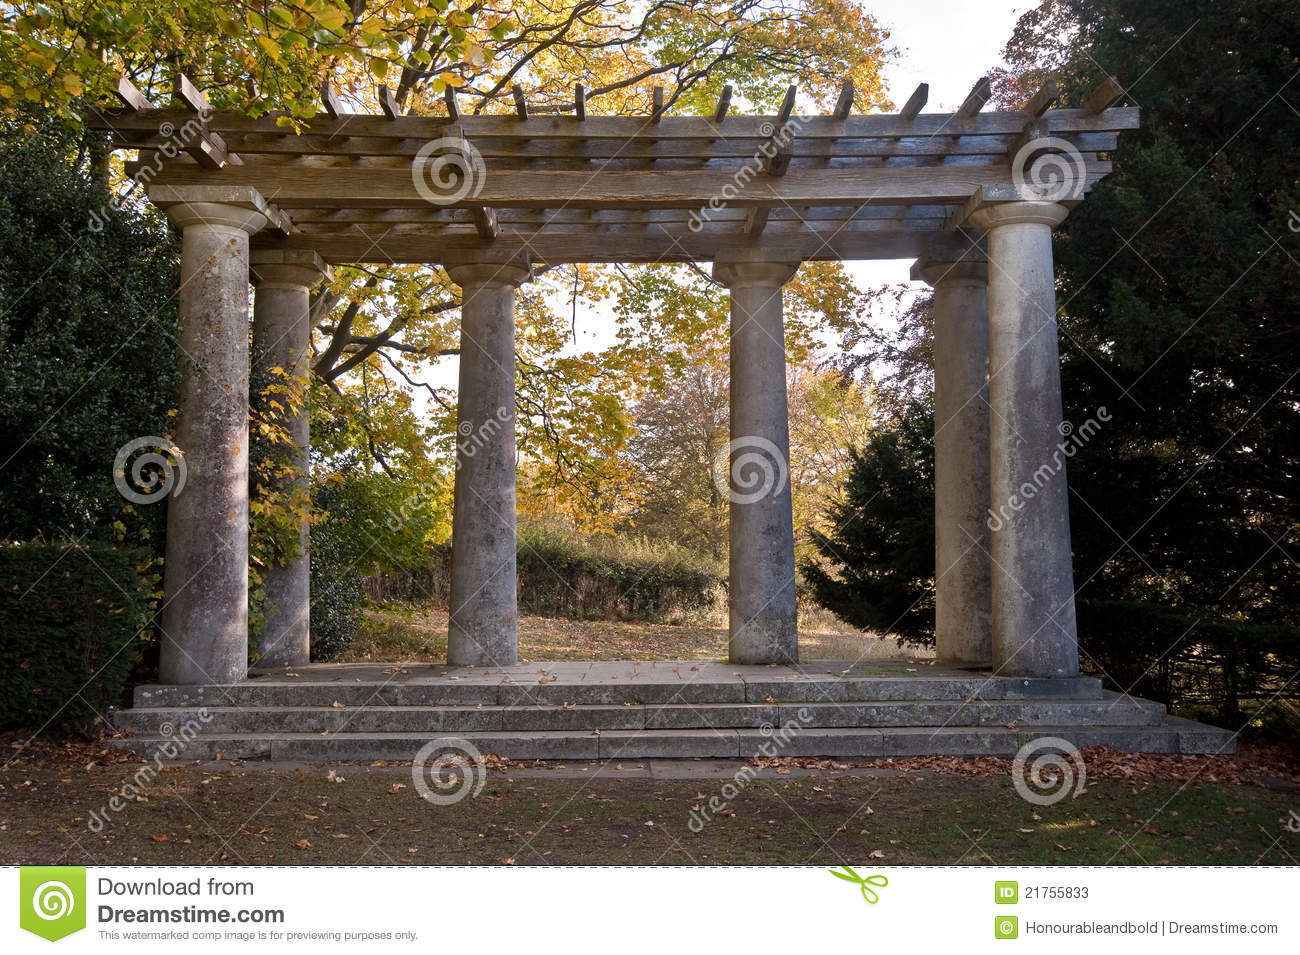 Roman Style Pagoda With Pillars And Trellis Stock Image Image of